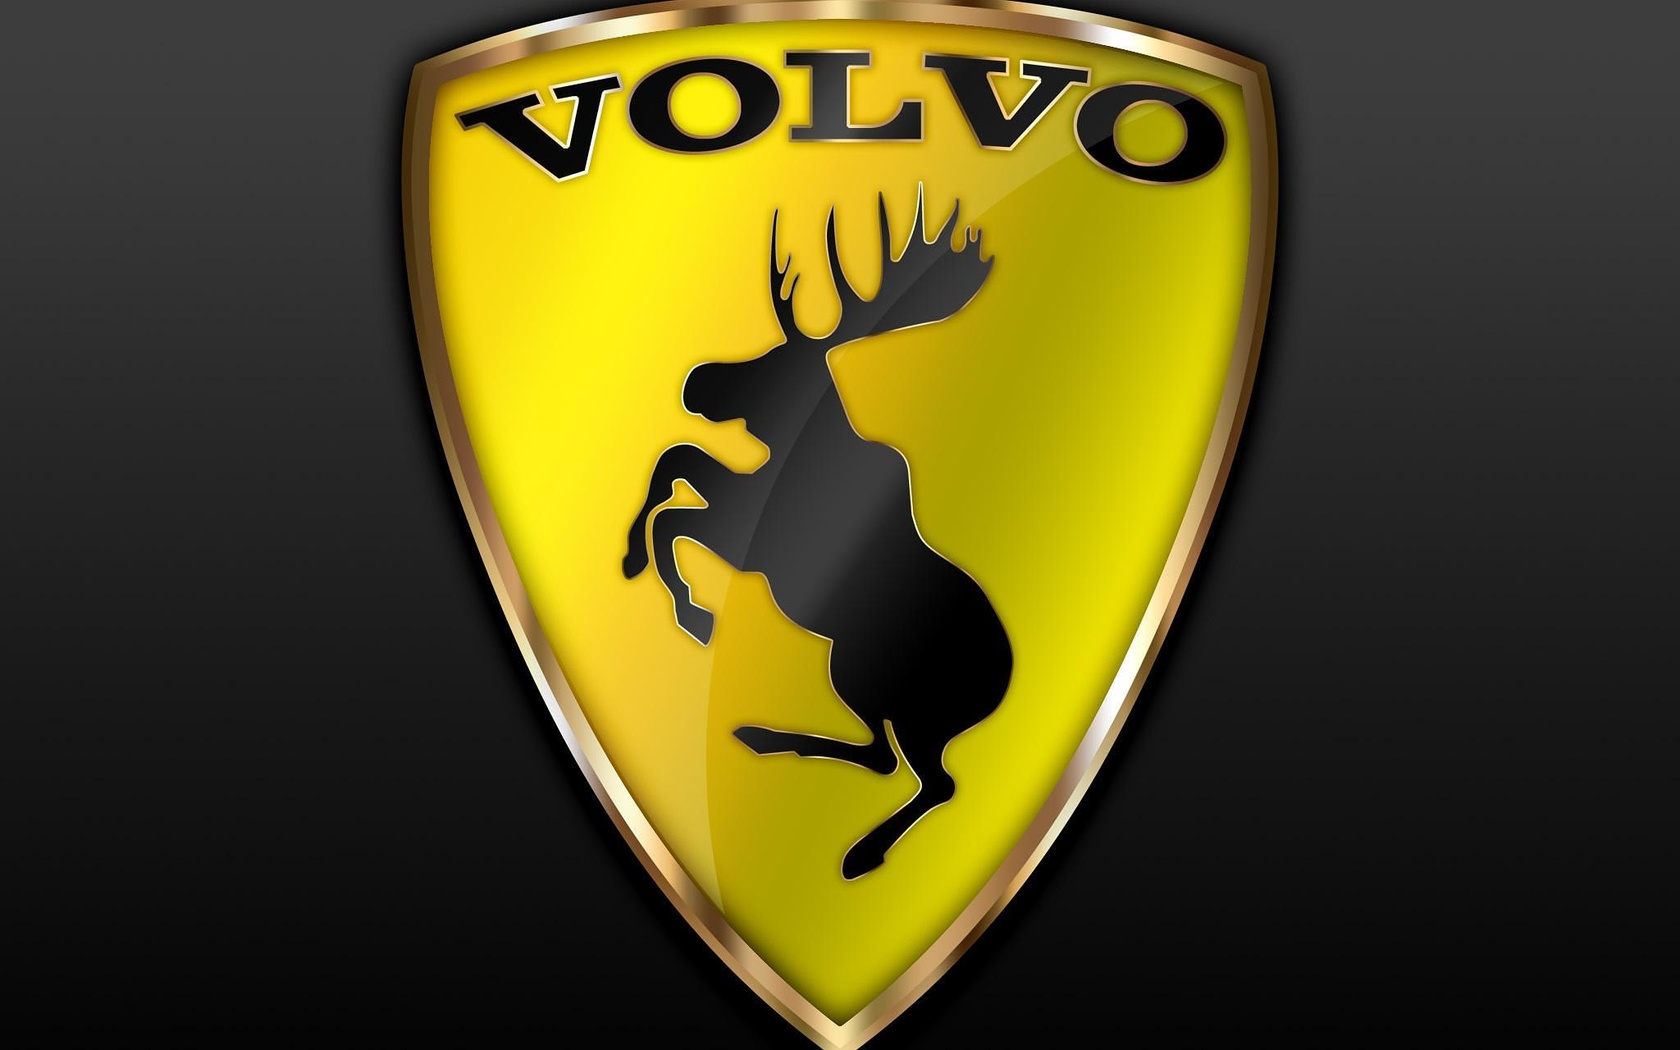 Download Wallpaper Volvo Logo 1680x1050 The Wallpapers